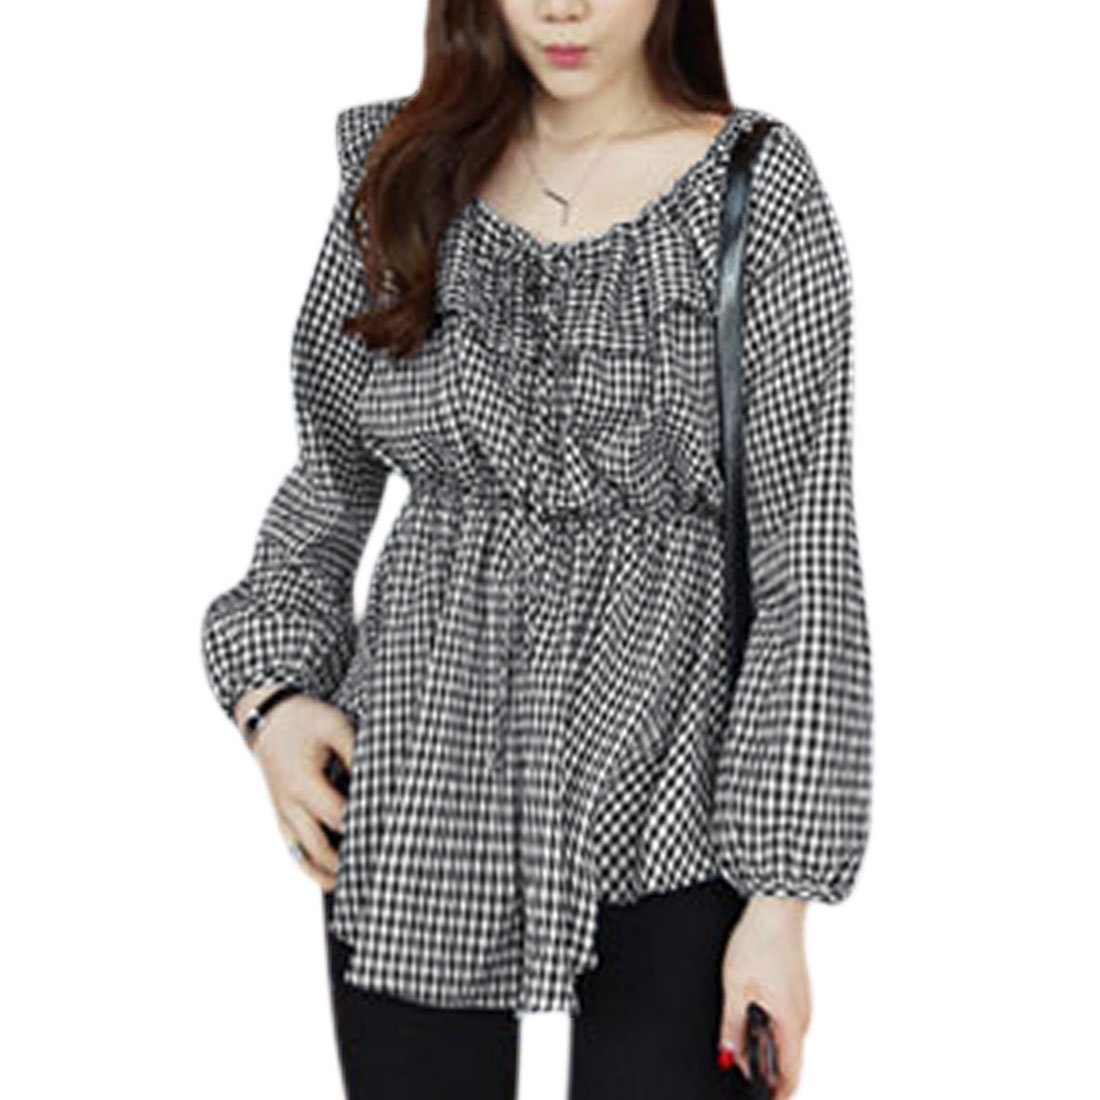 Women Ruffled Neck Elastic Waist Plaids Casual Tunic Shirt Black XS